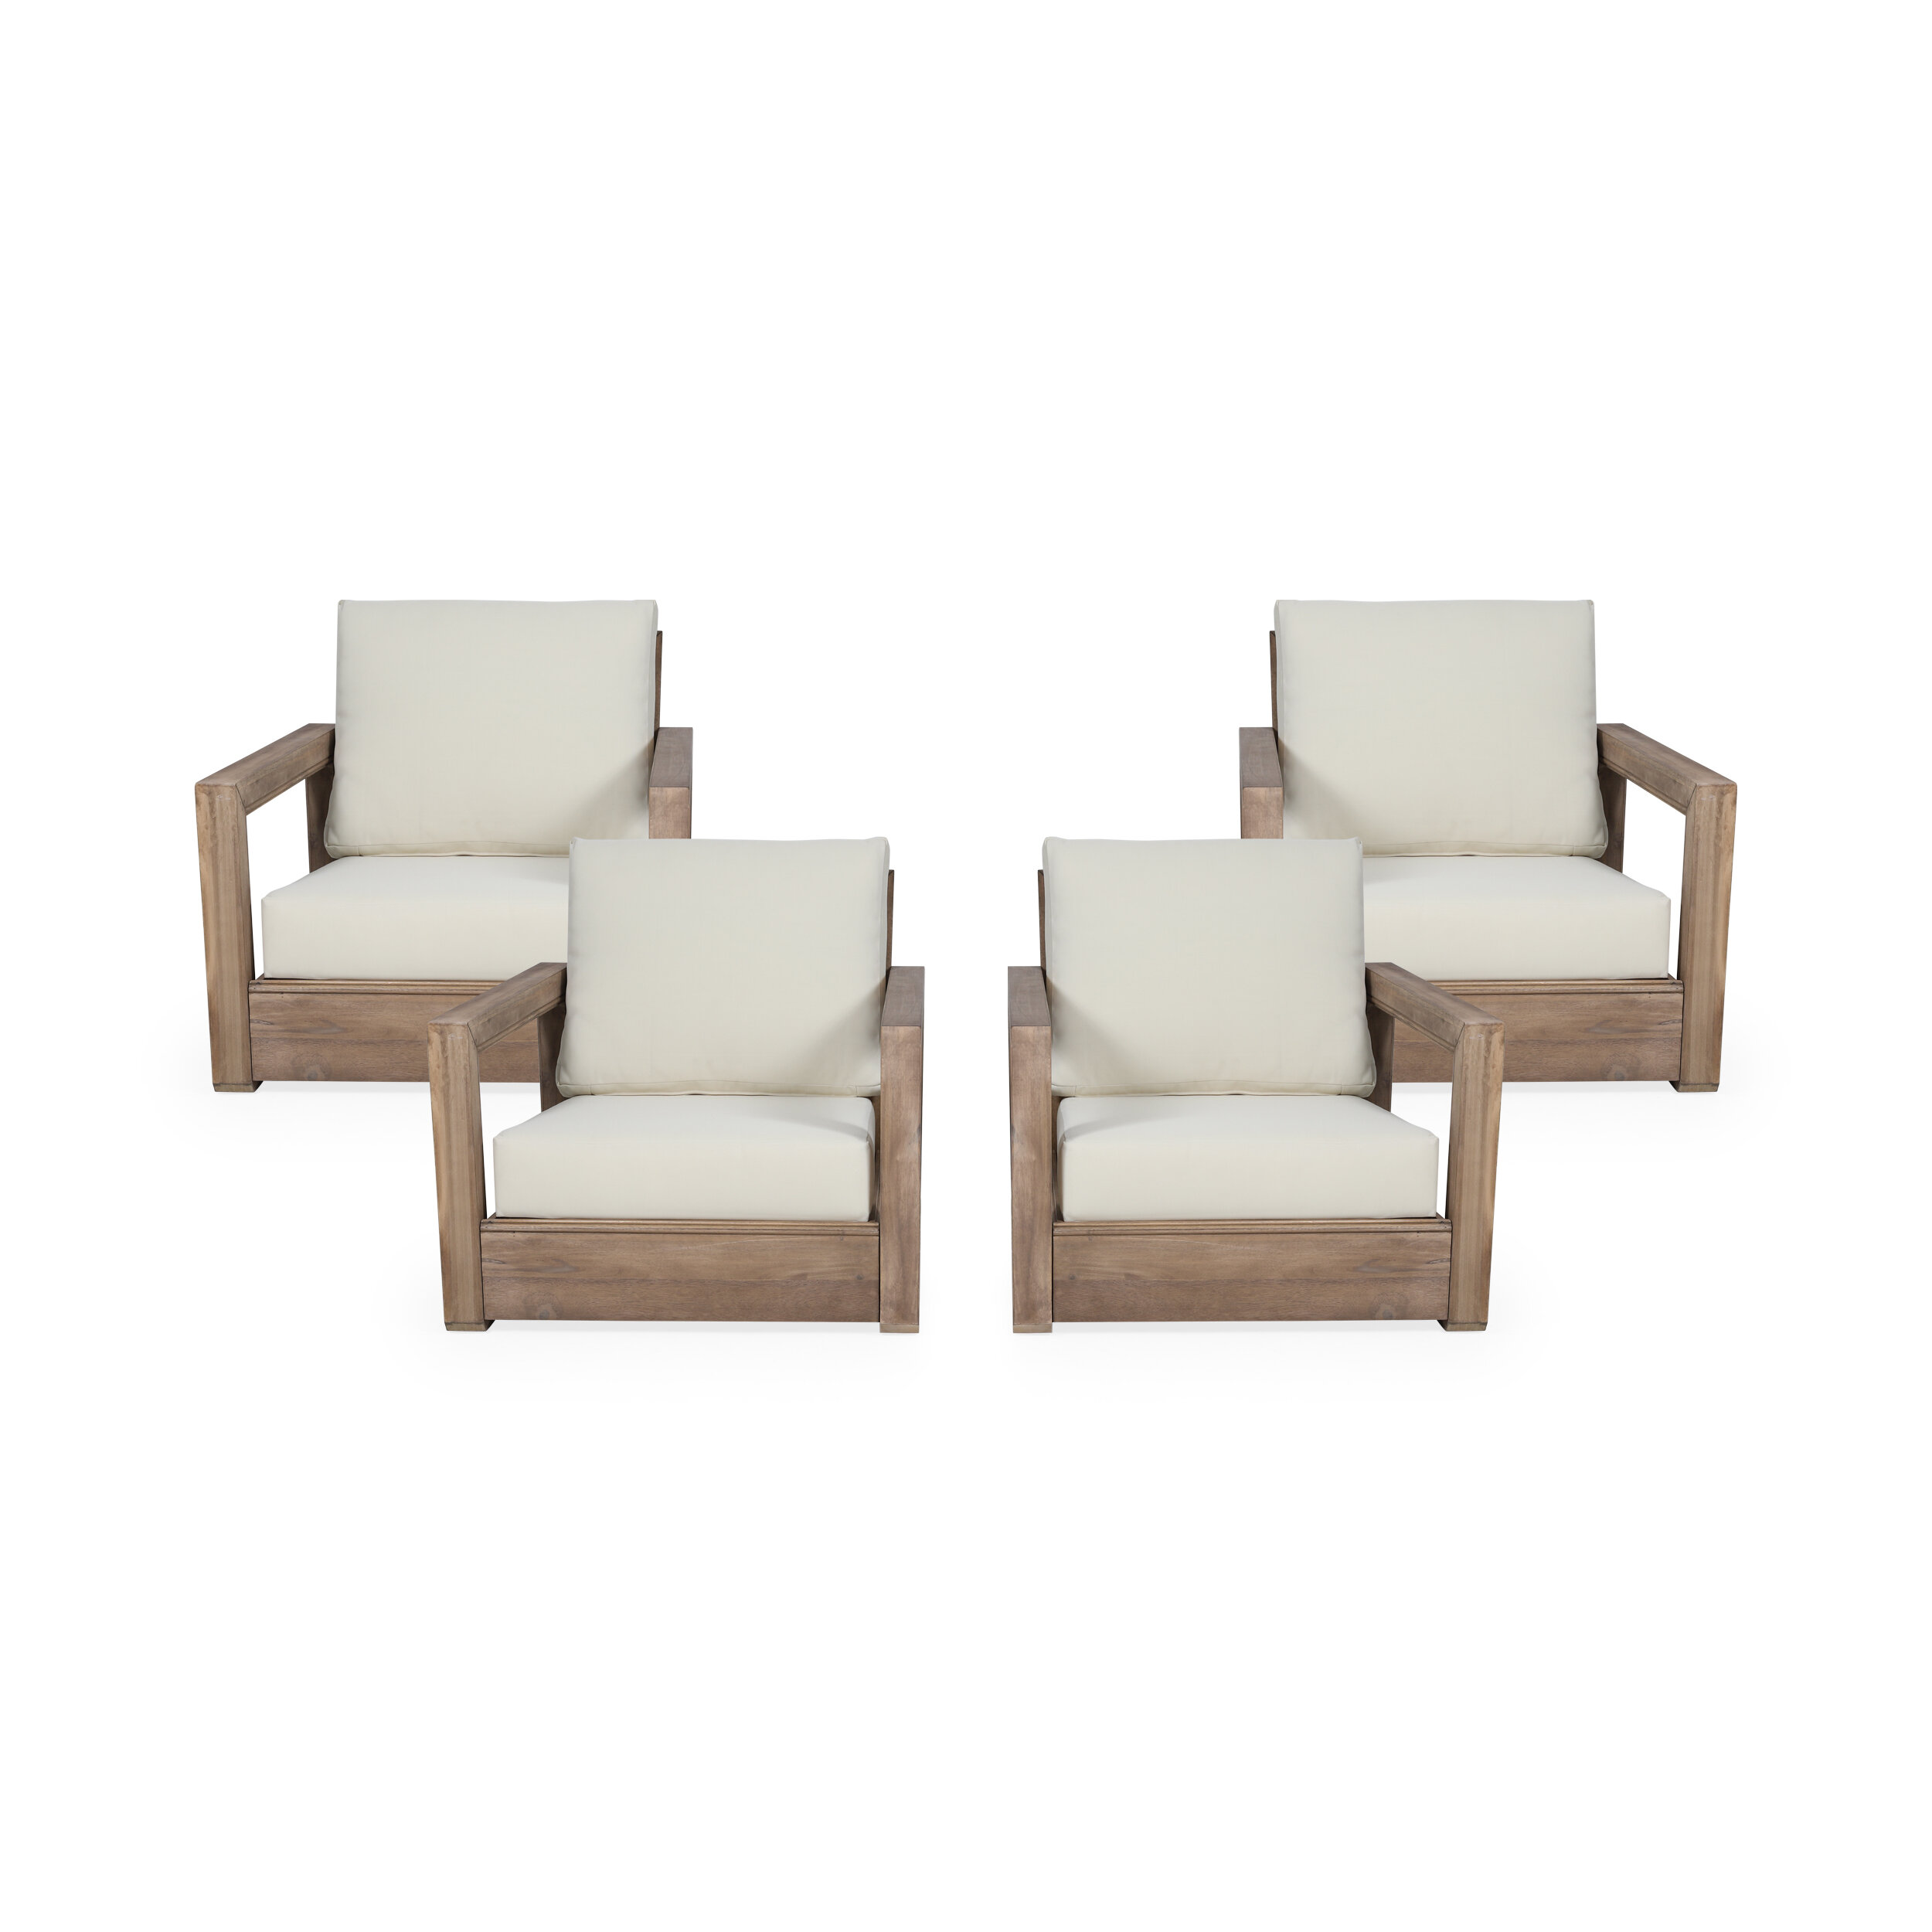 Loon Peak Richmond Patio Chair With